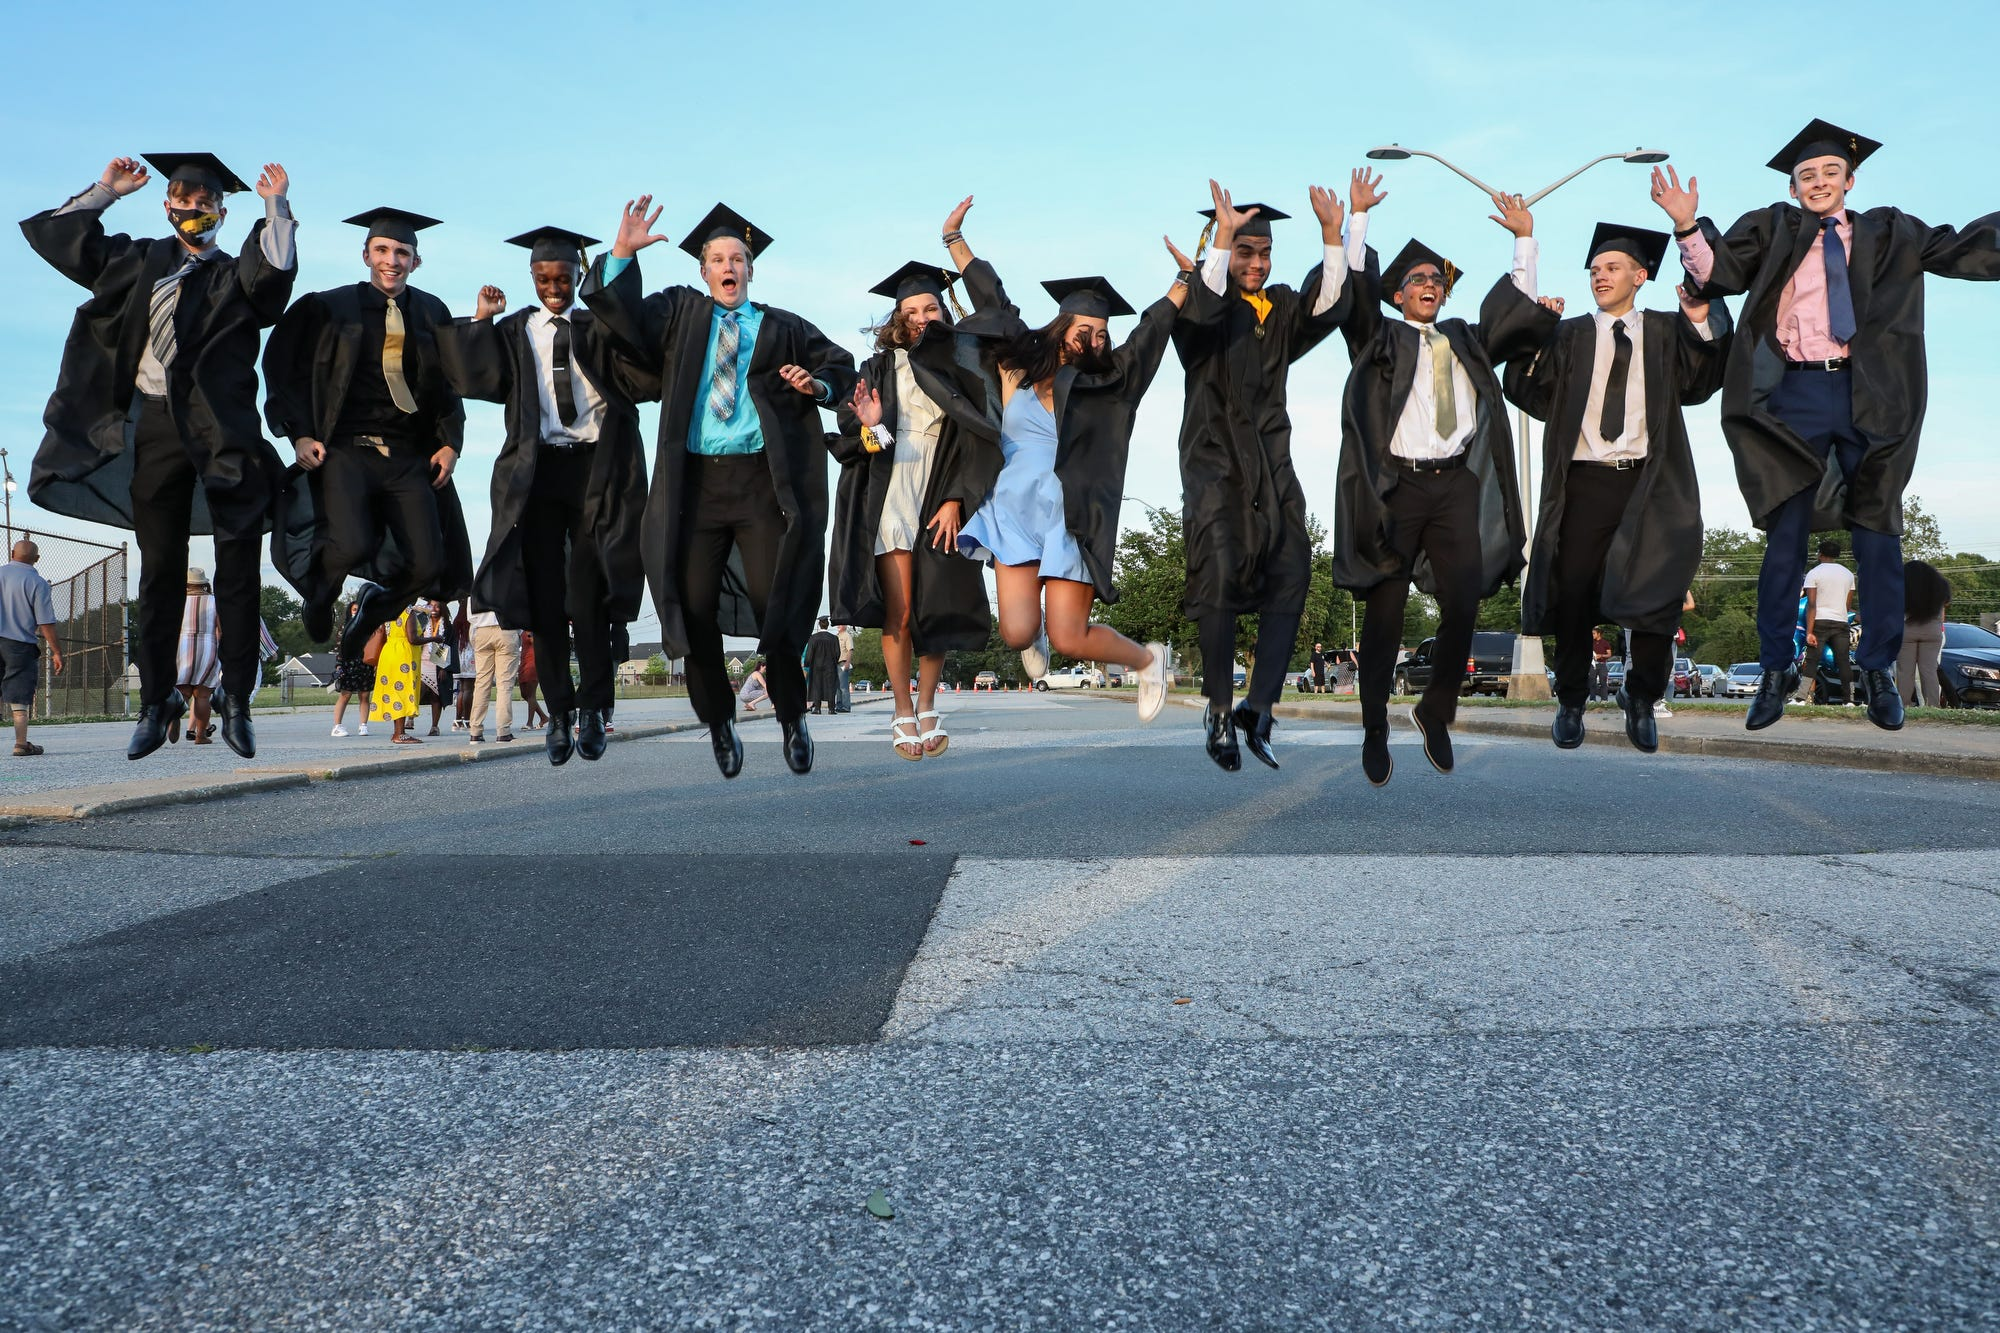 Delaware high school students celebrate graduation in style as restrictions are lifted